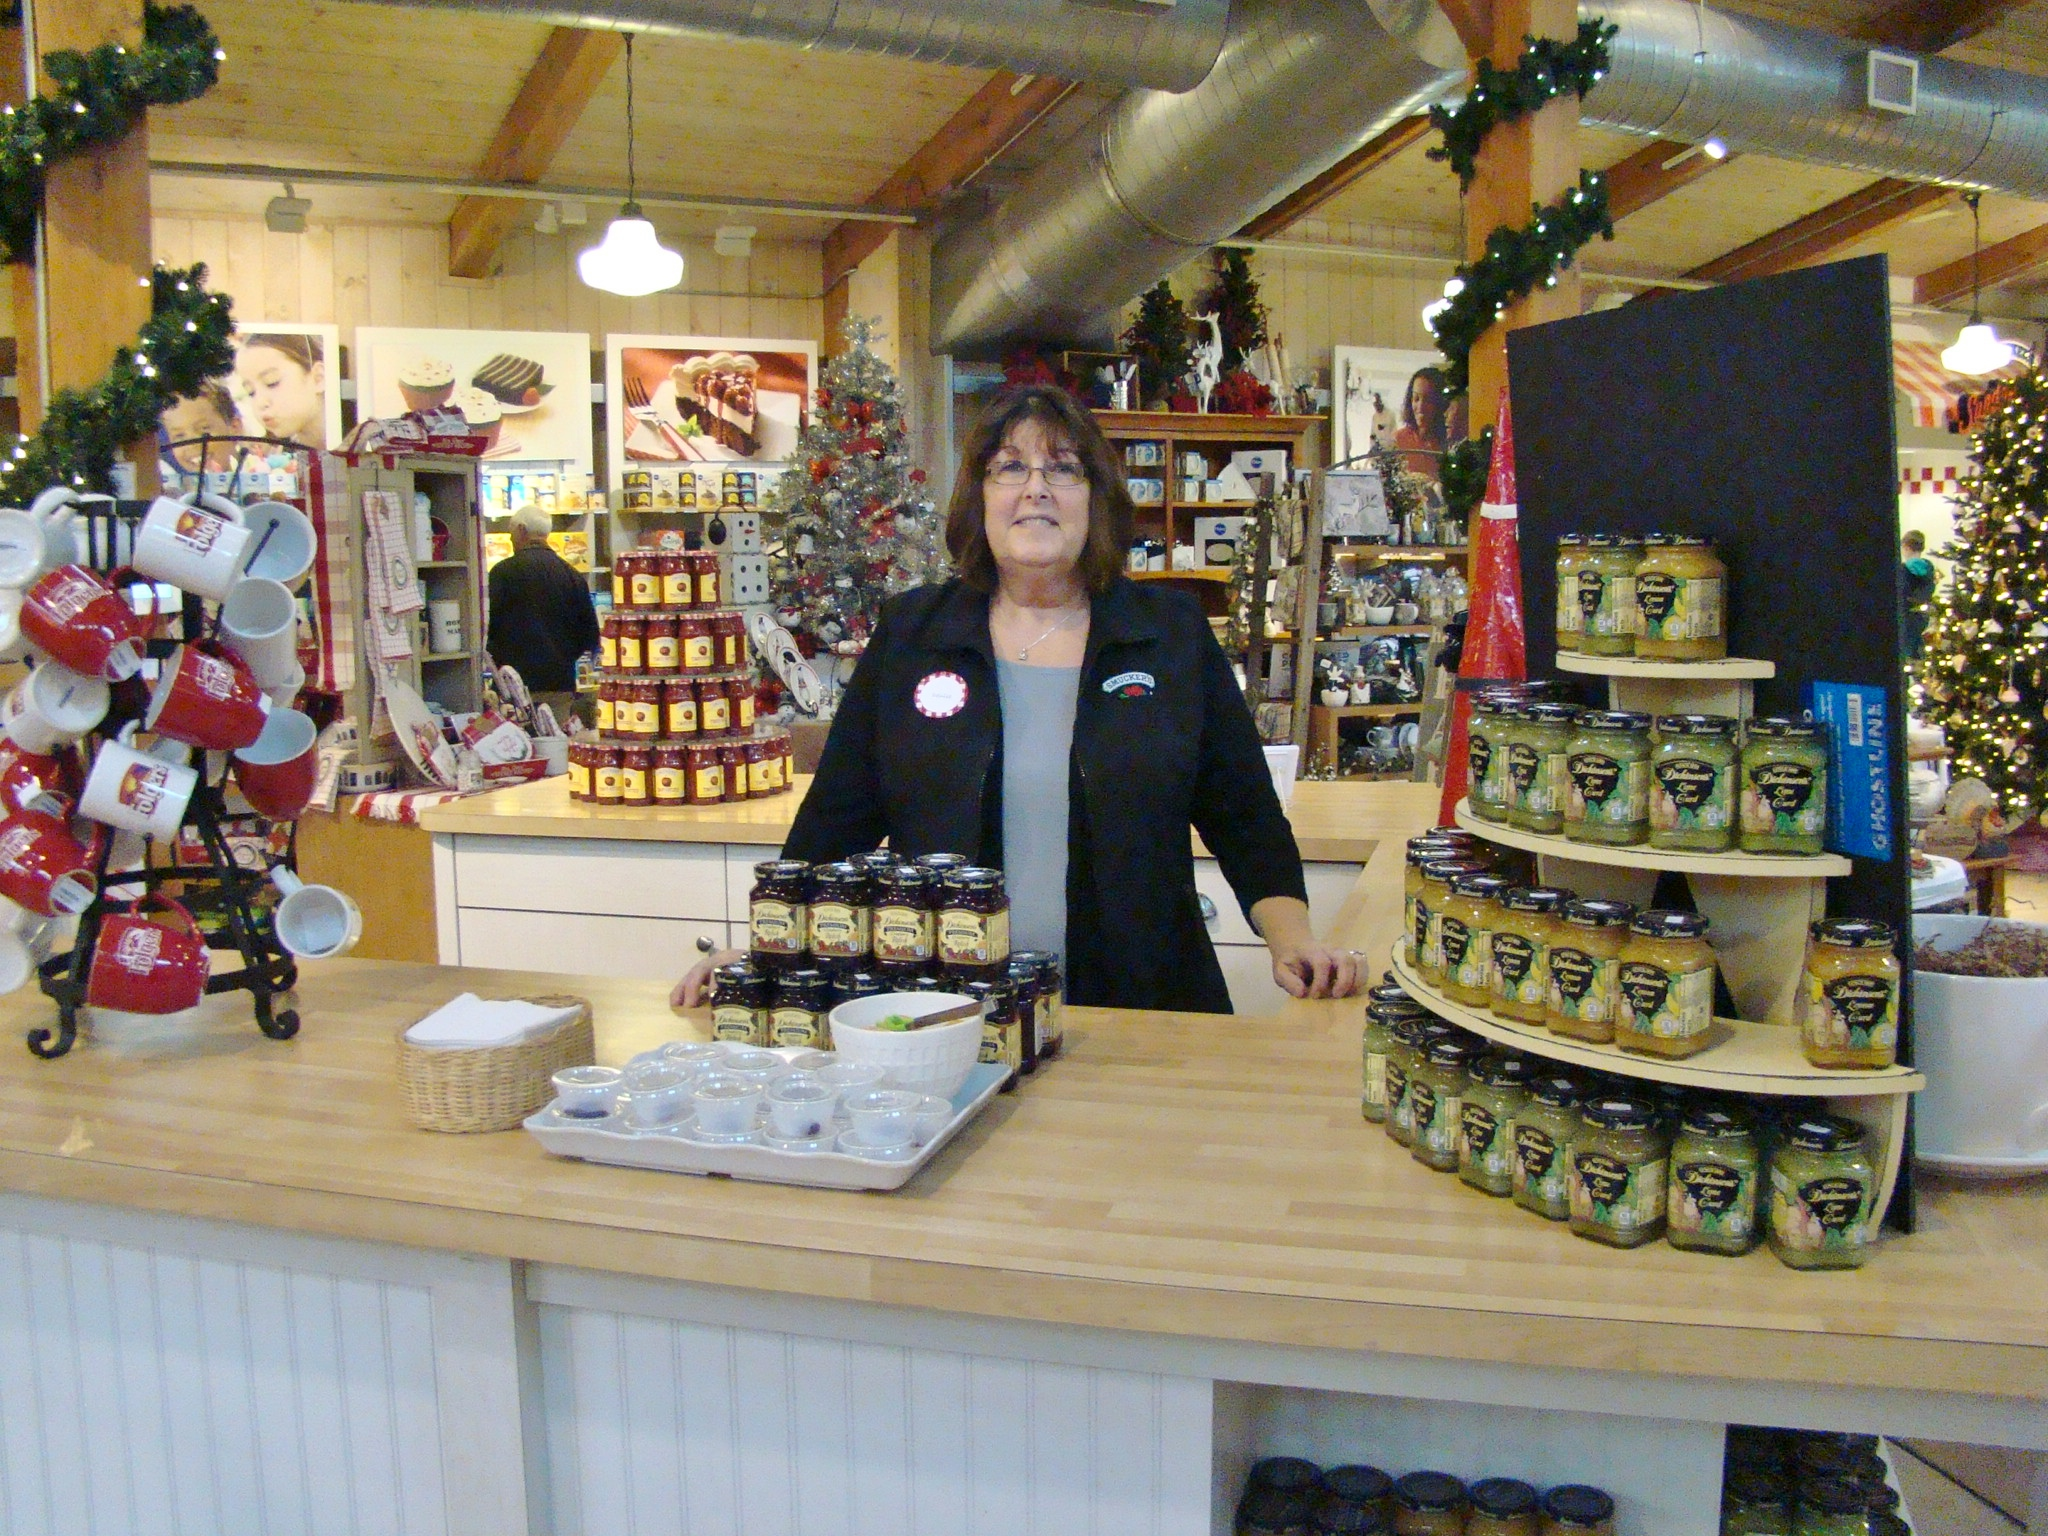 Smucker's Sample Station with Denise